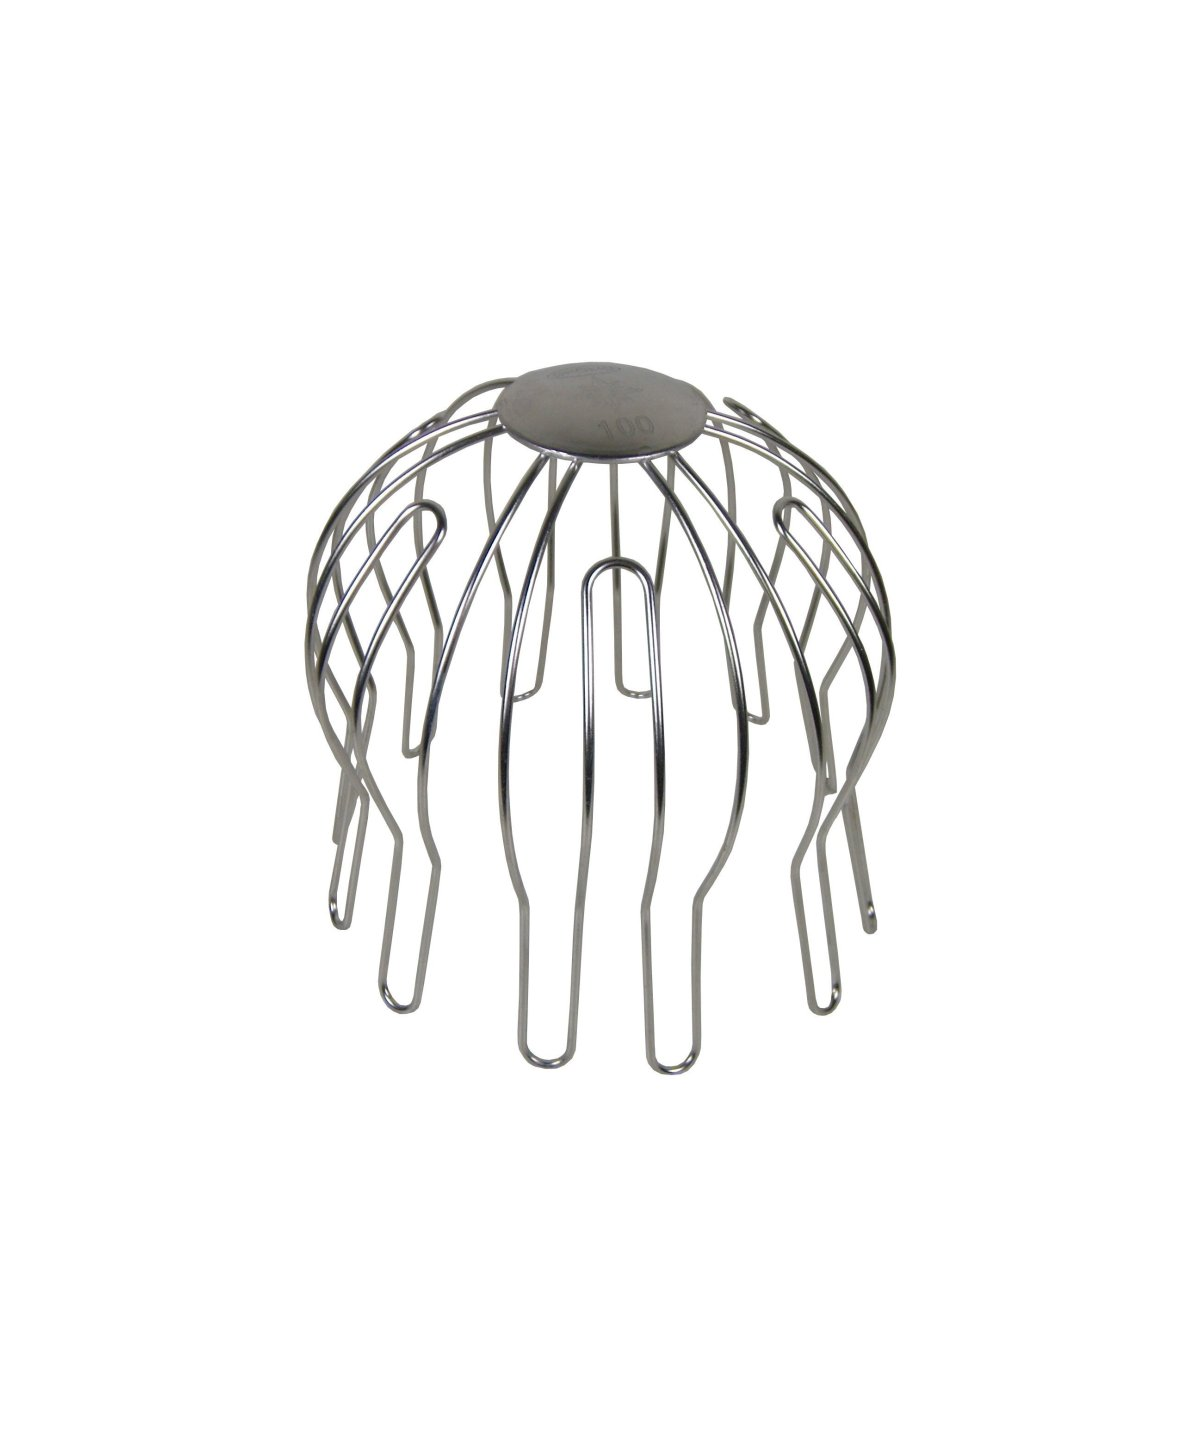 Click For A Larger View Heavy Duty Wire Strainer Stainless